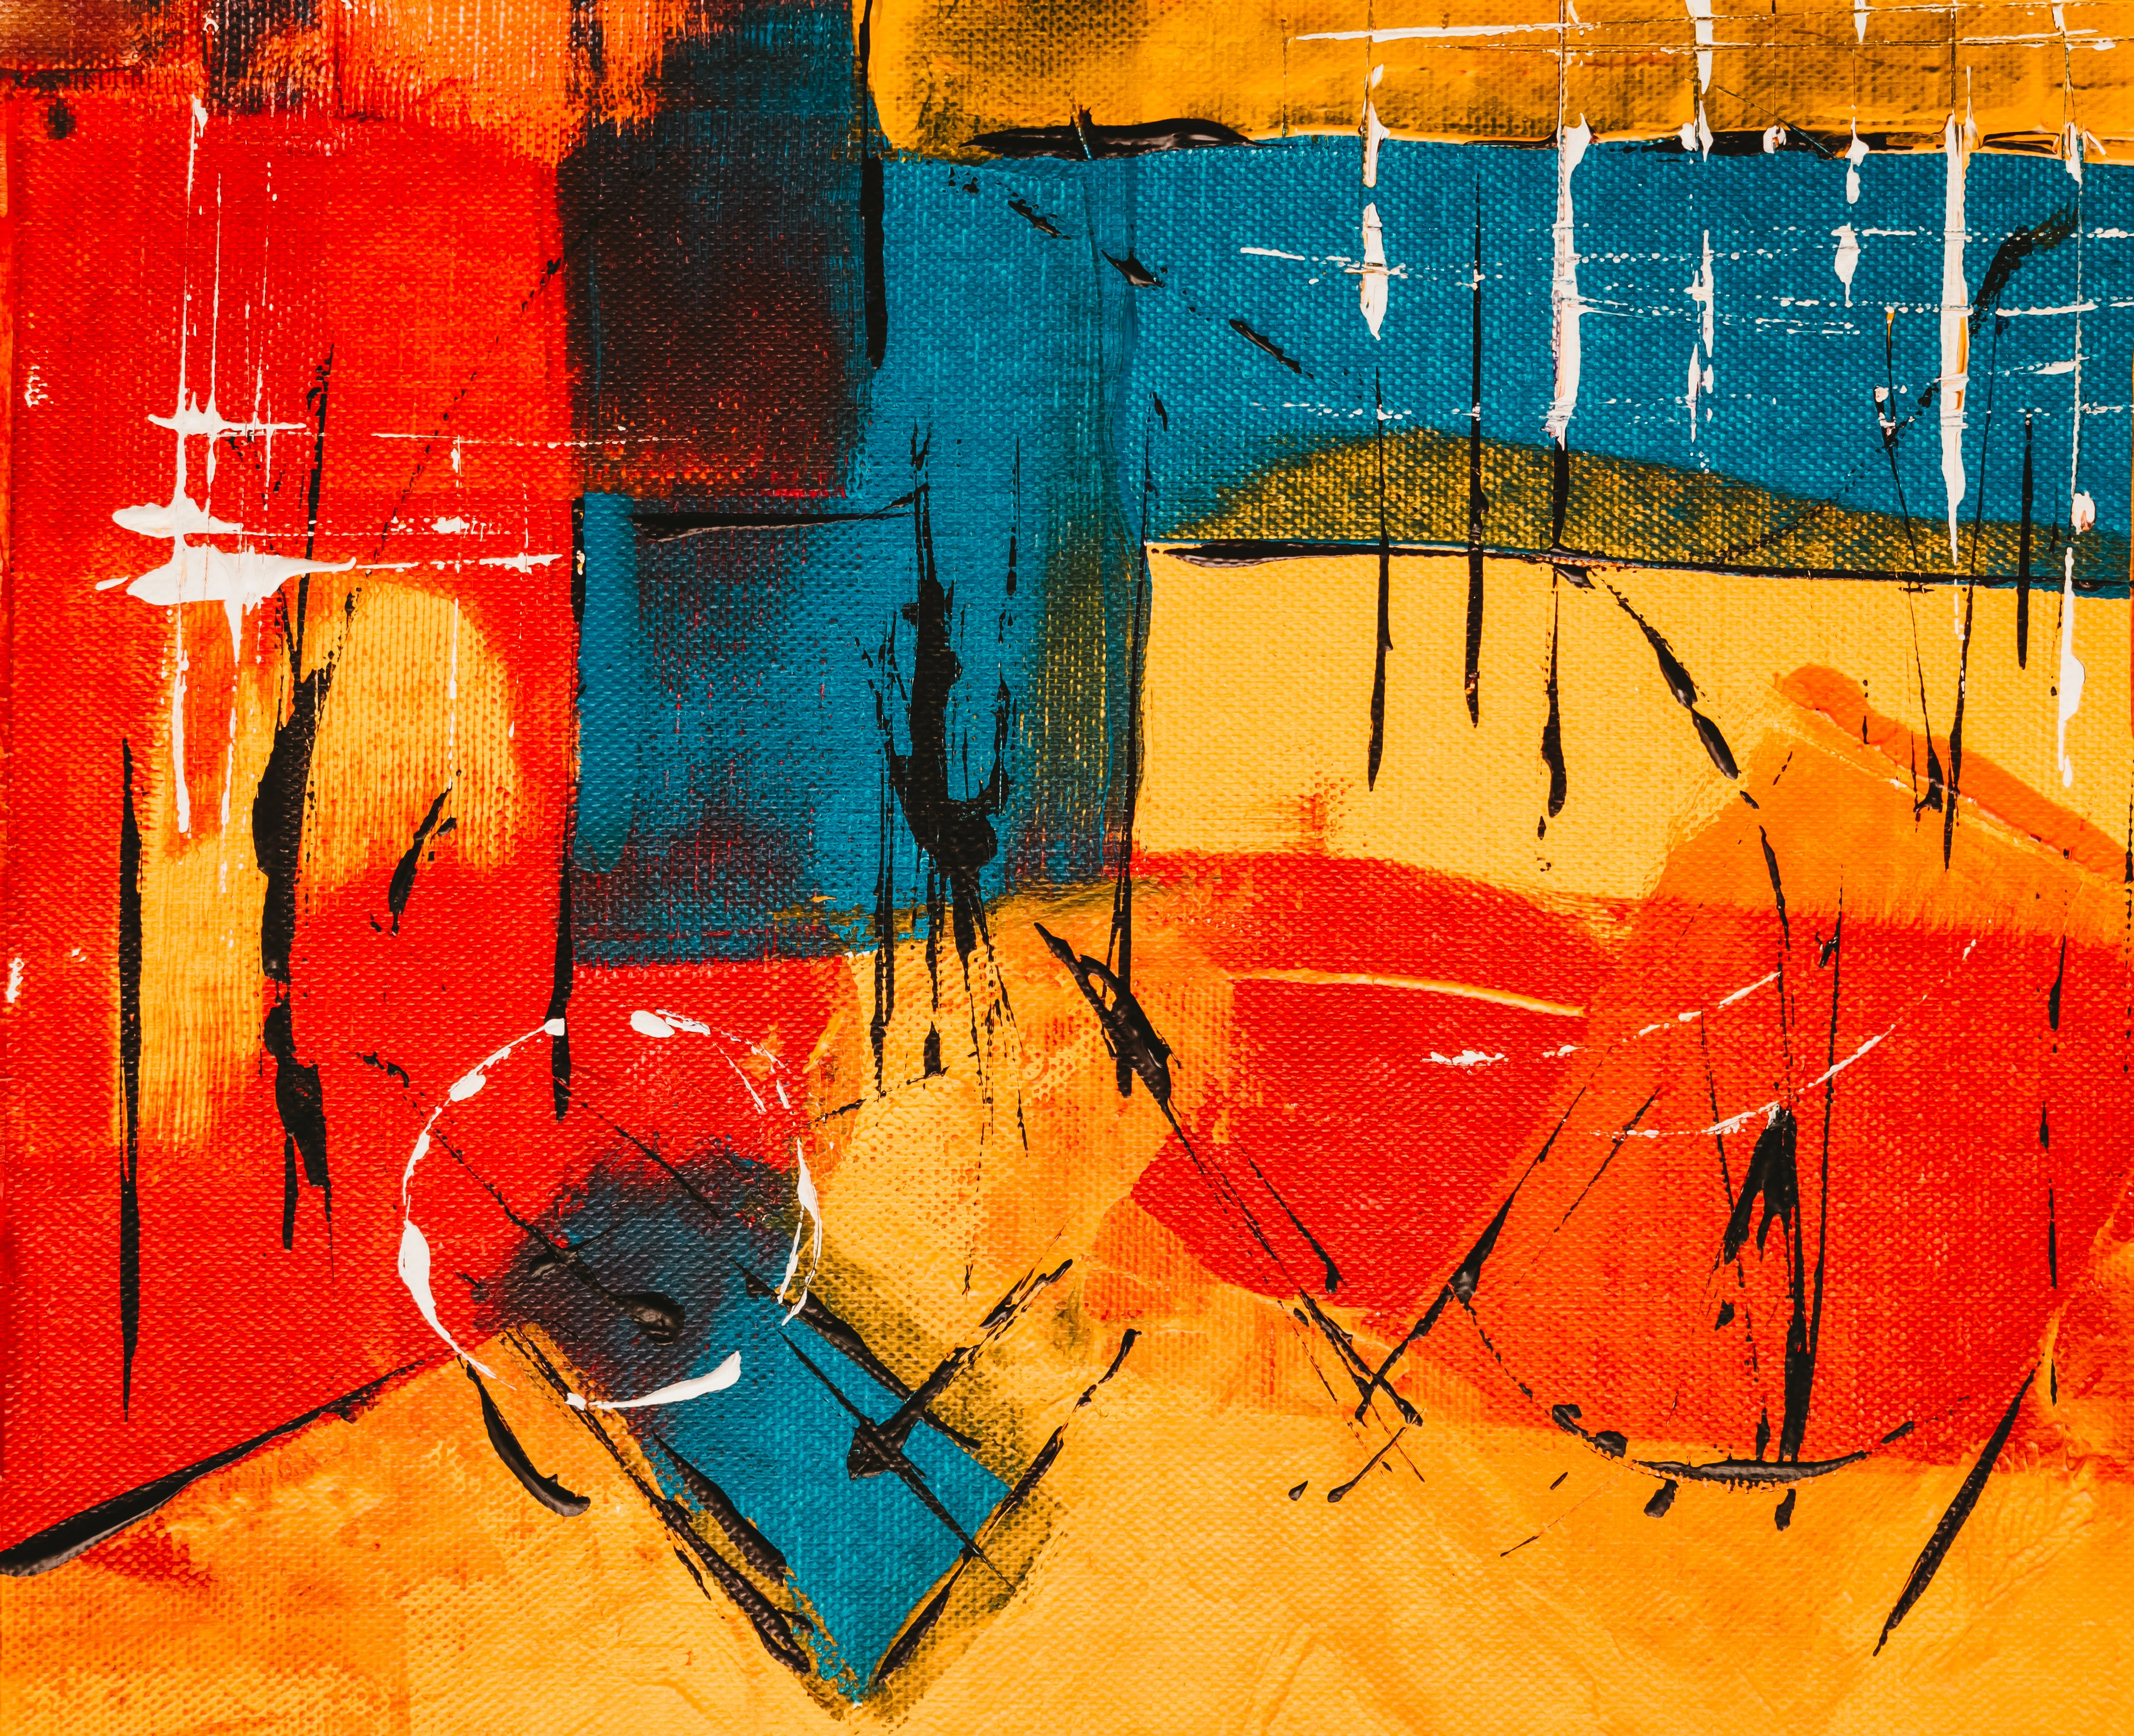 Red, Blue, and Yellow Abstract Painting